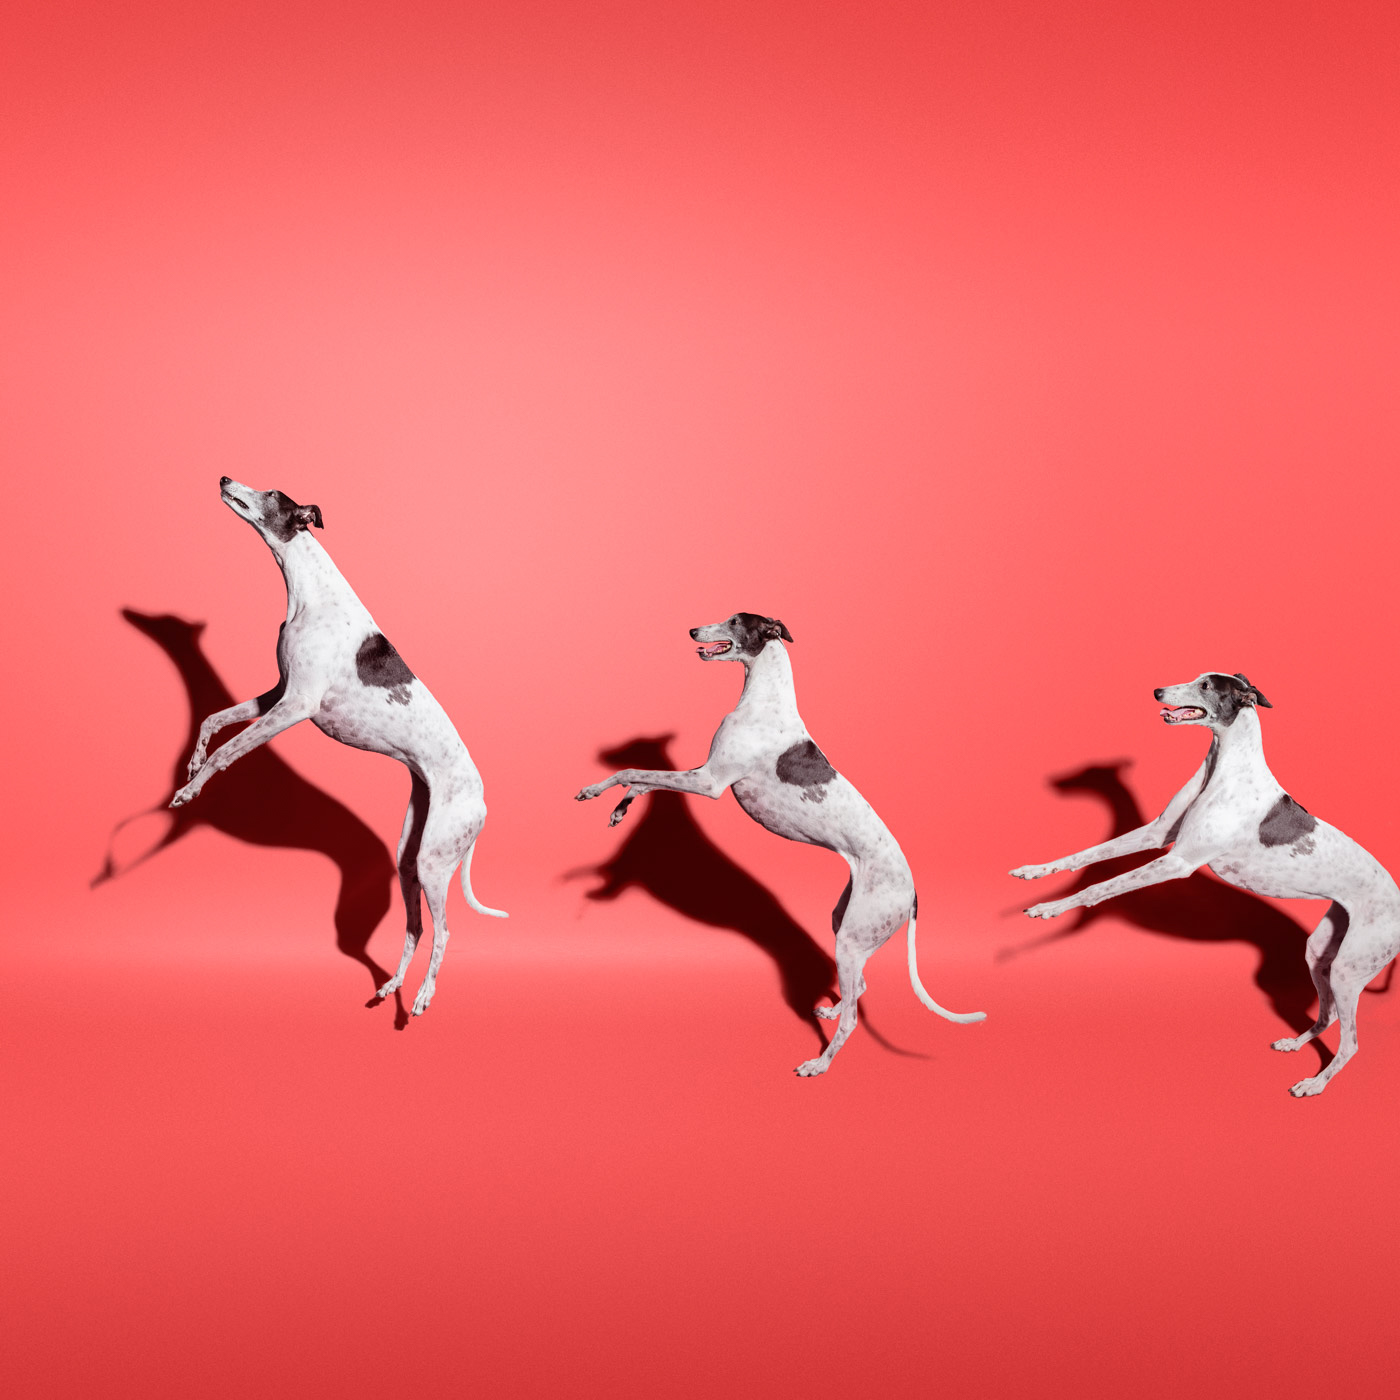 Commercial photography Portland - greyhound dog on red background